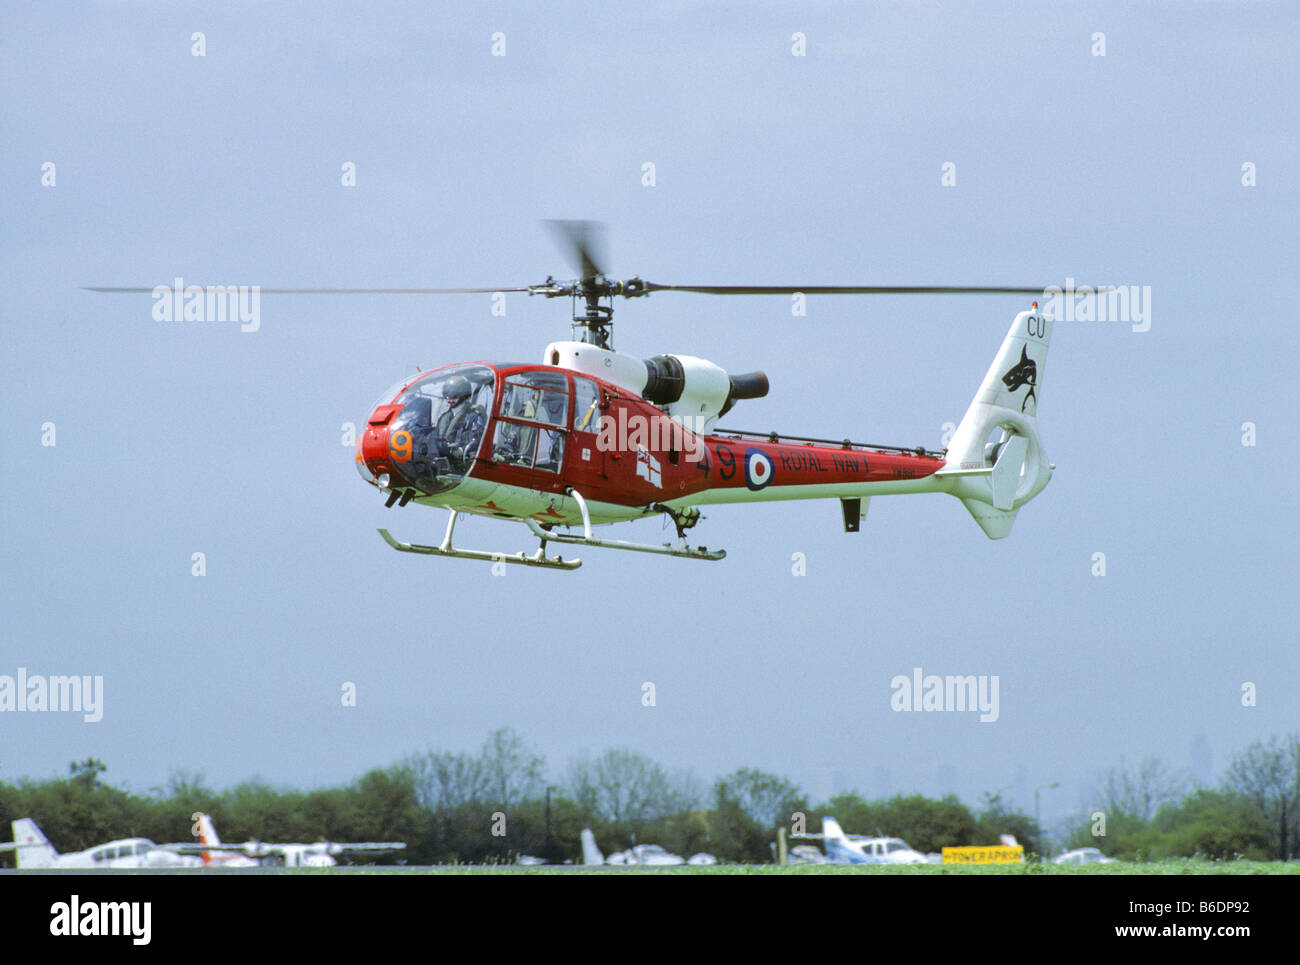 Biggin Hill Helicopters on snake hill, gun hill, sand hill, tower hill, house hill,